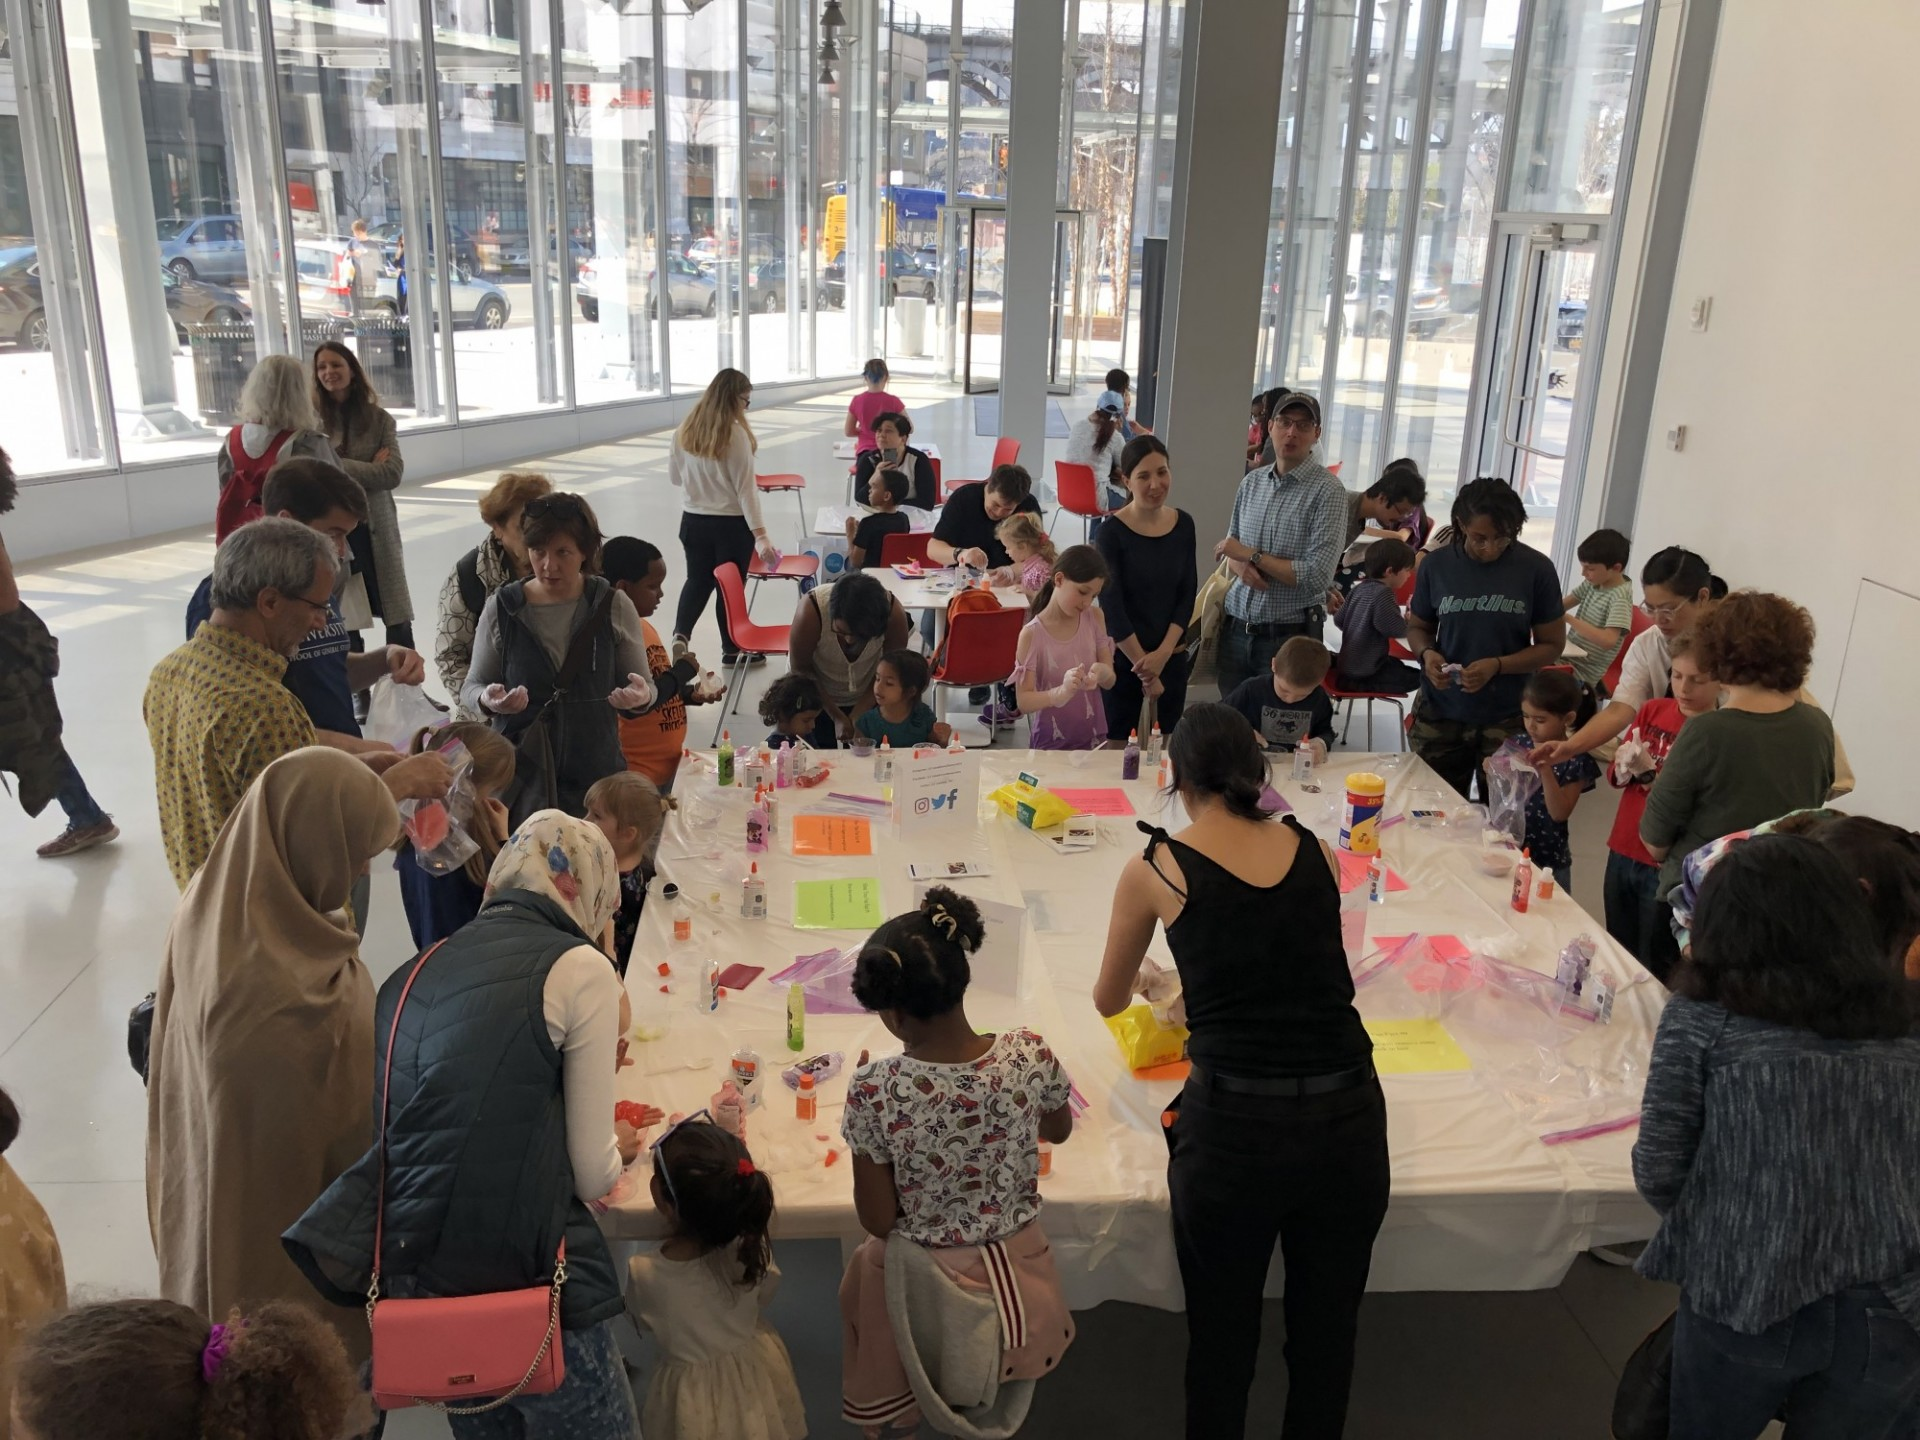 Group of children and adults gathered around a large square table making slime as part of Community Day at The Forum